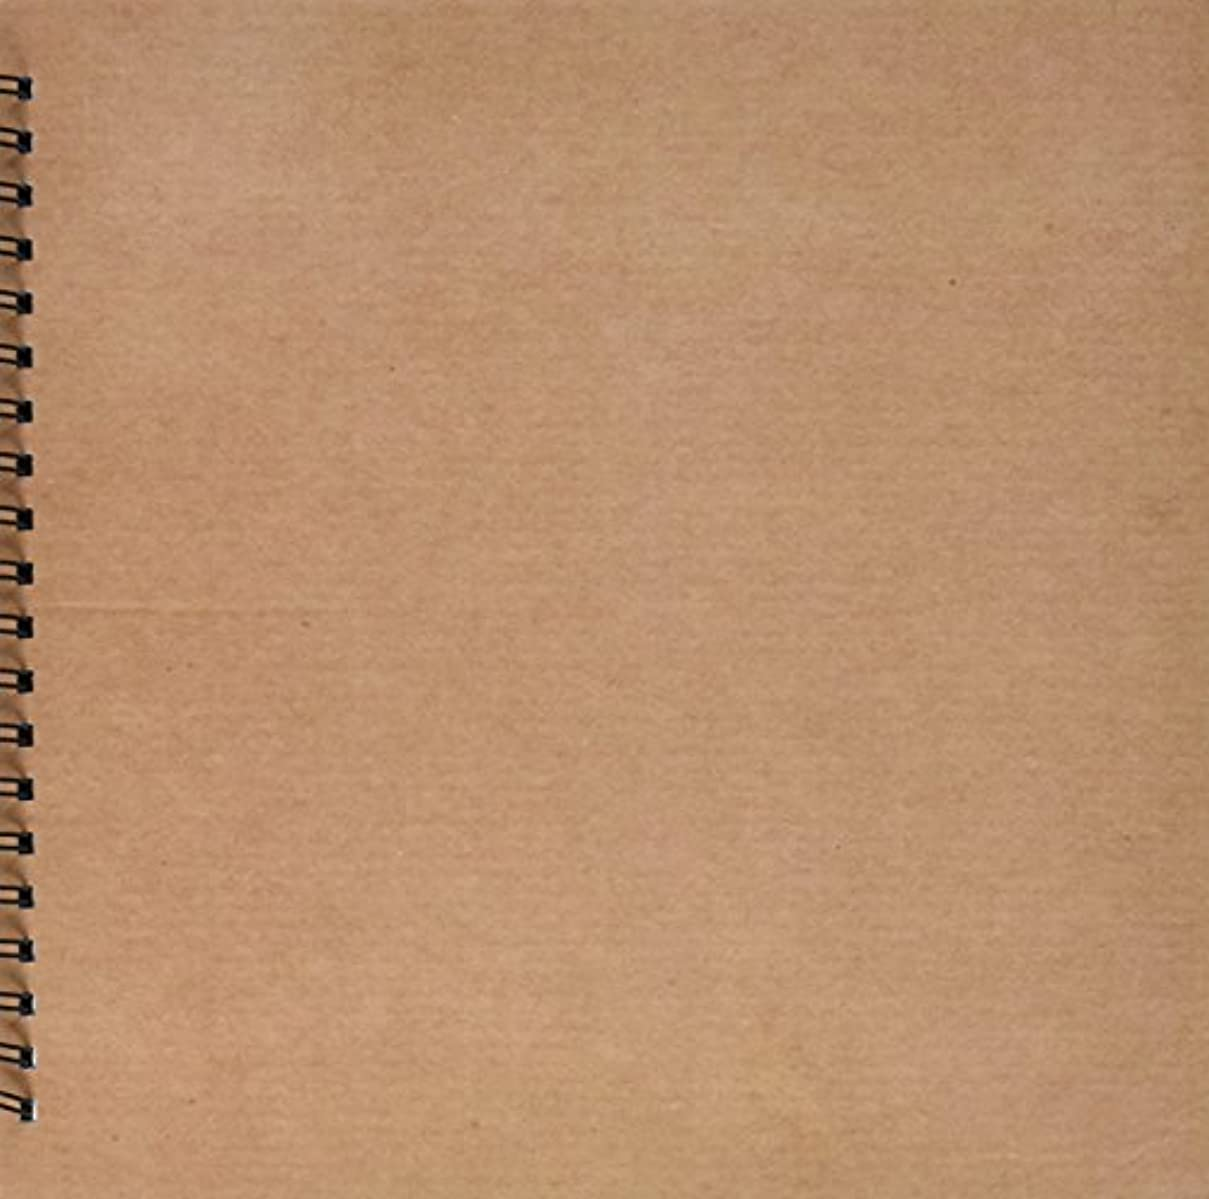 3dRose db_62628_2 Natural Cardboard Texture Memory Book, 12 by 12-Inch